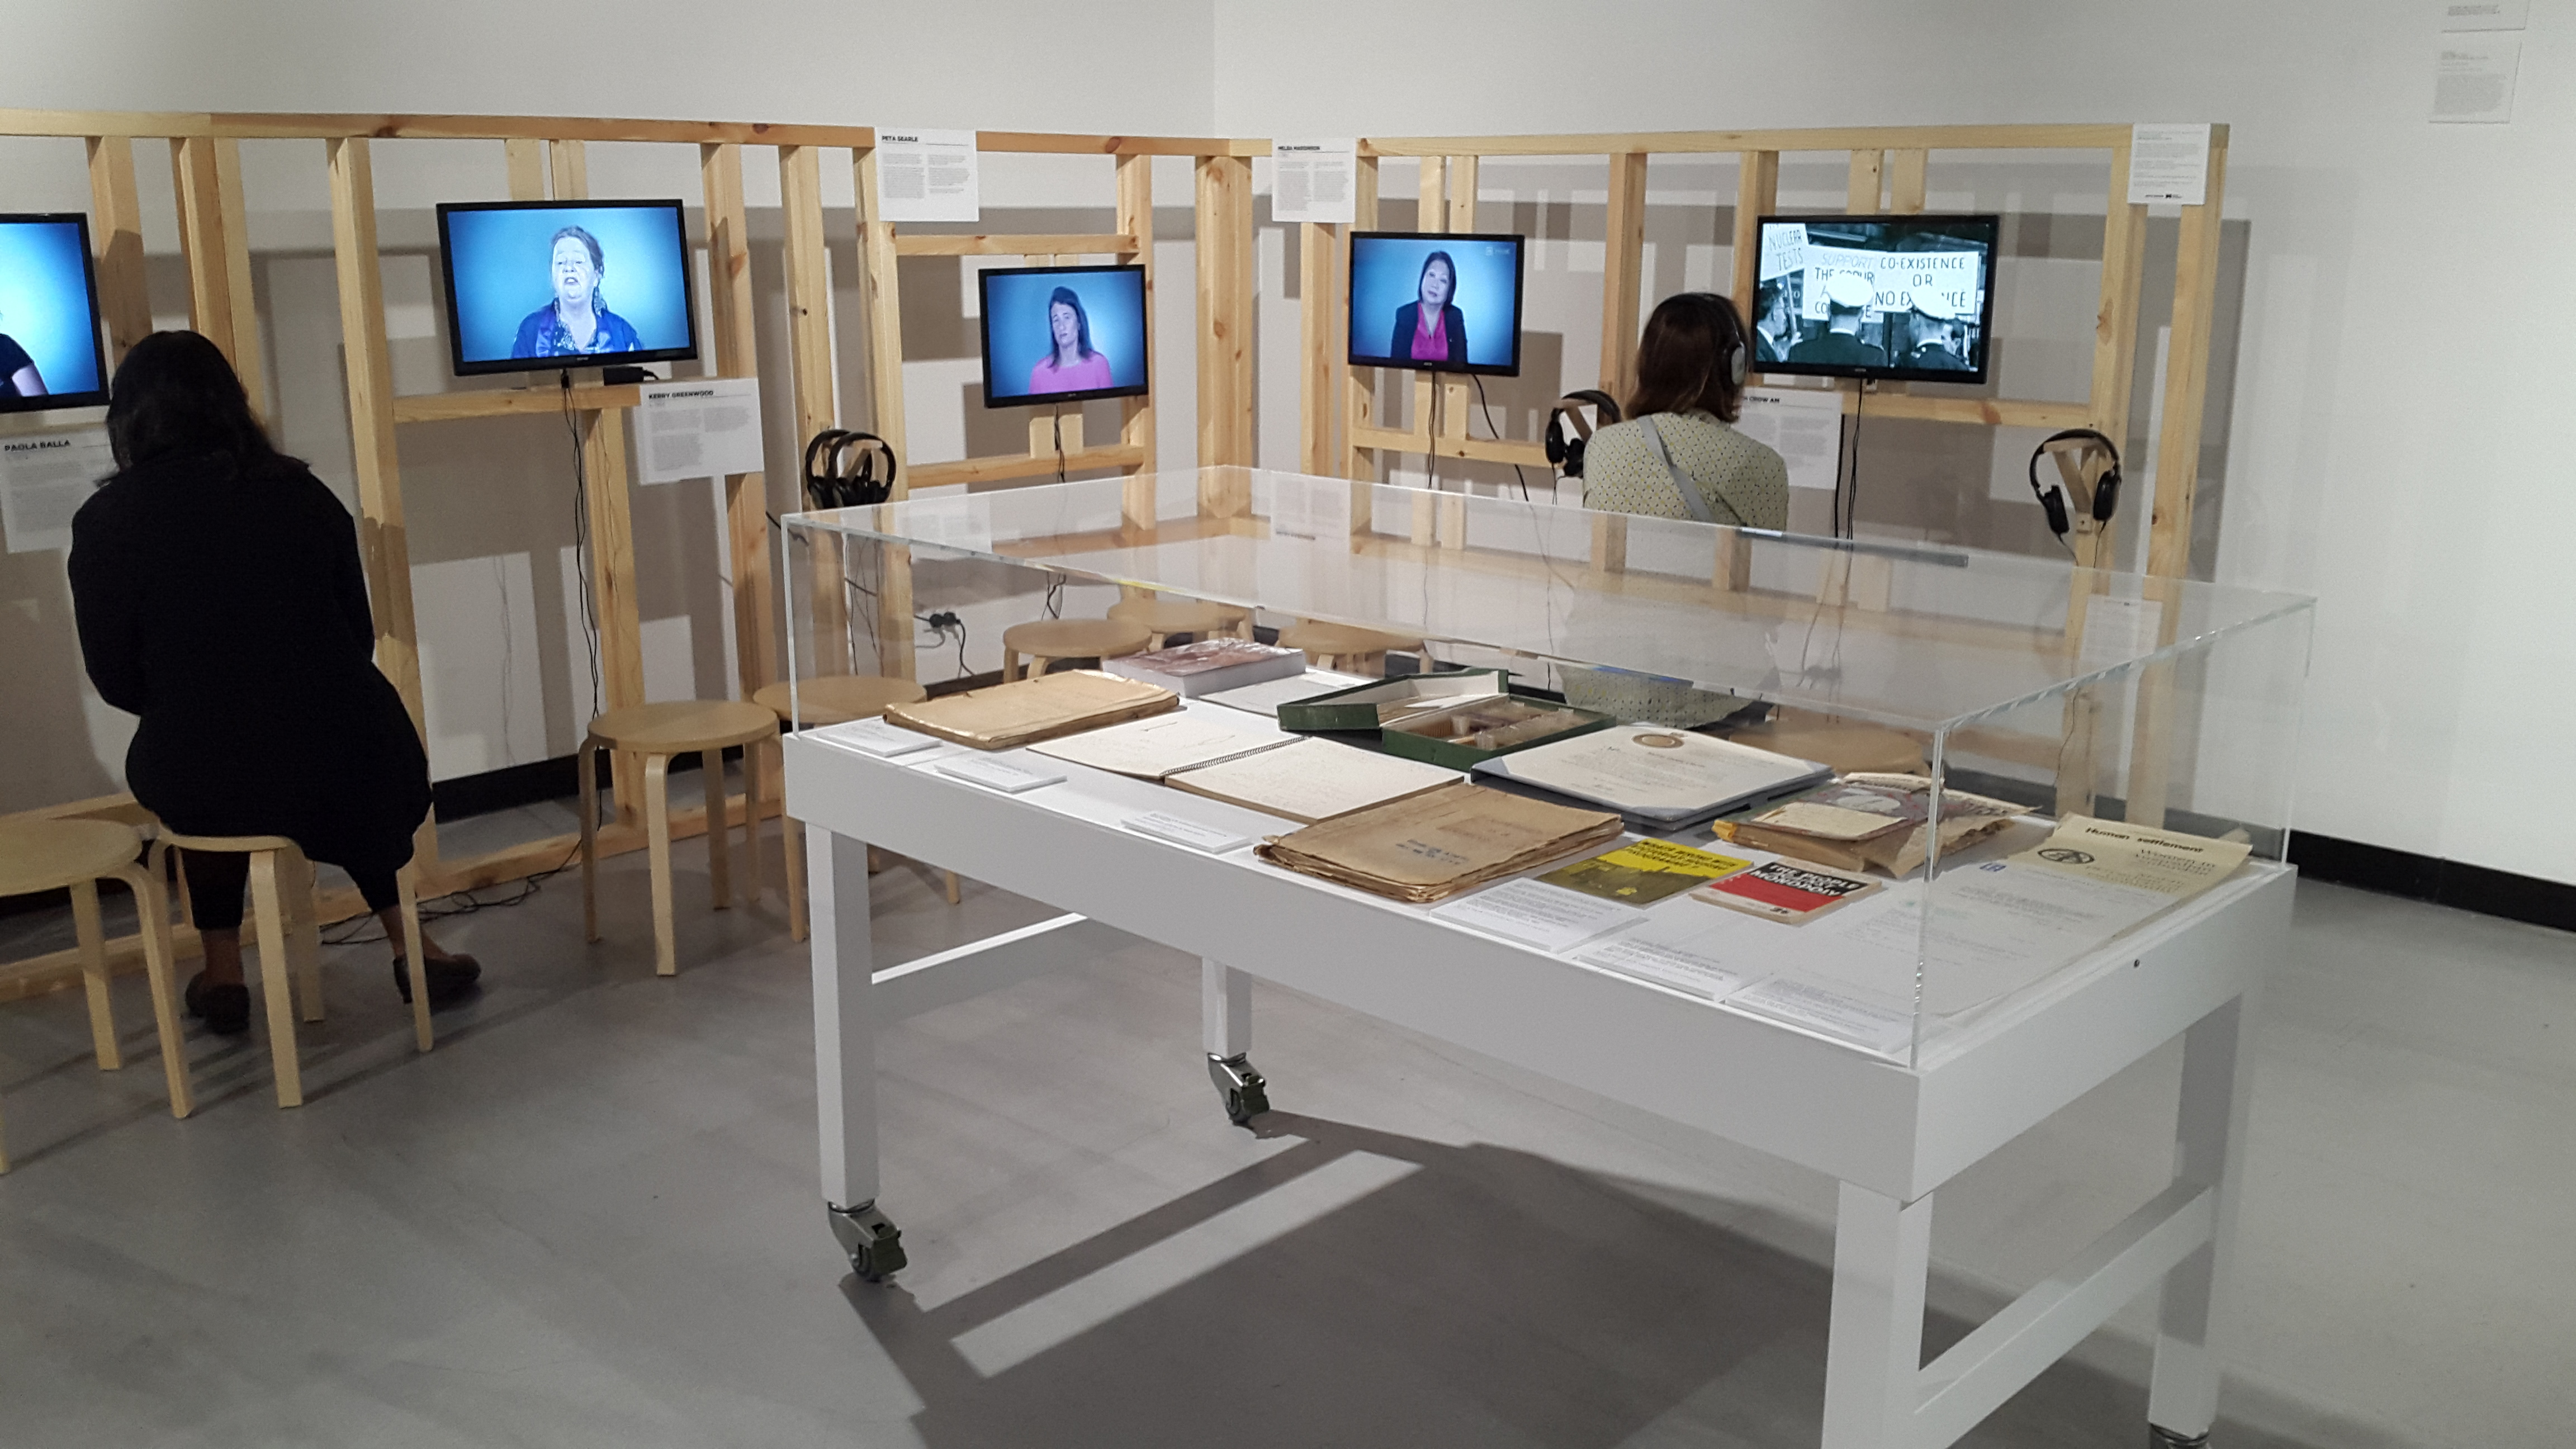 Women in the West exhibition space